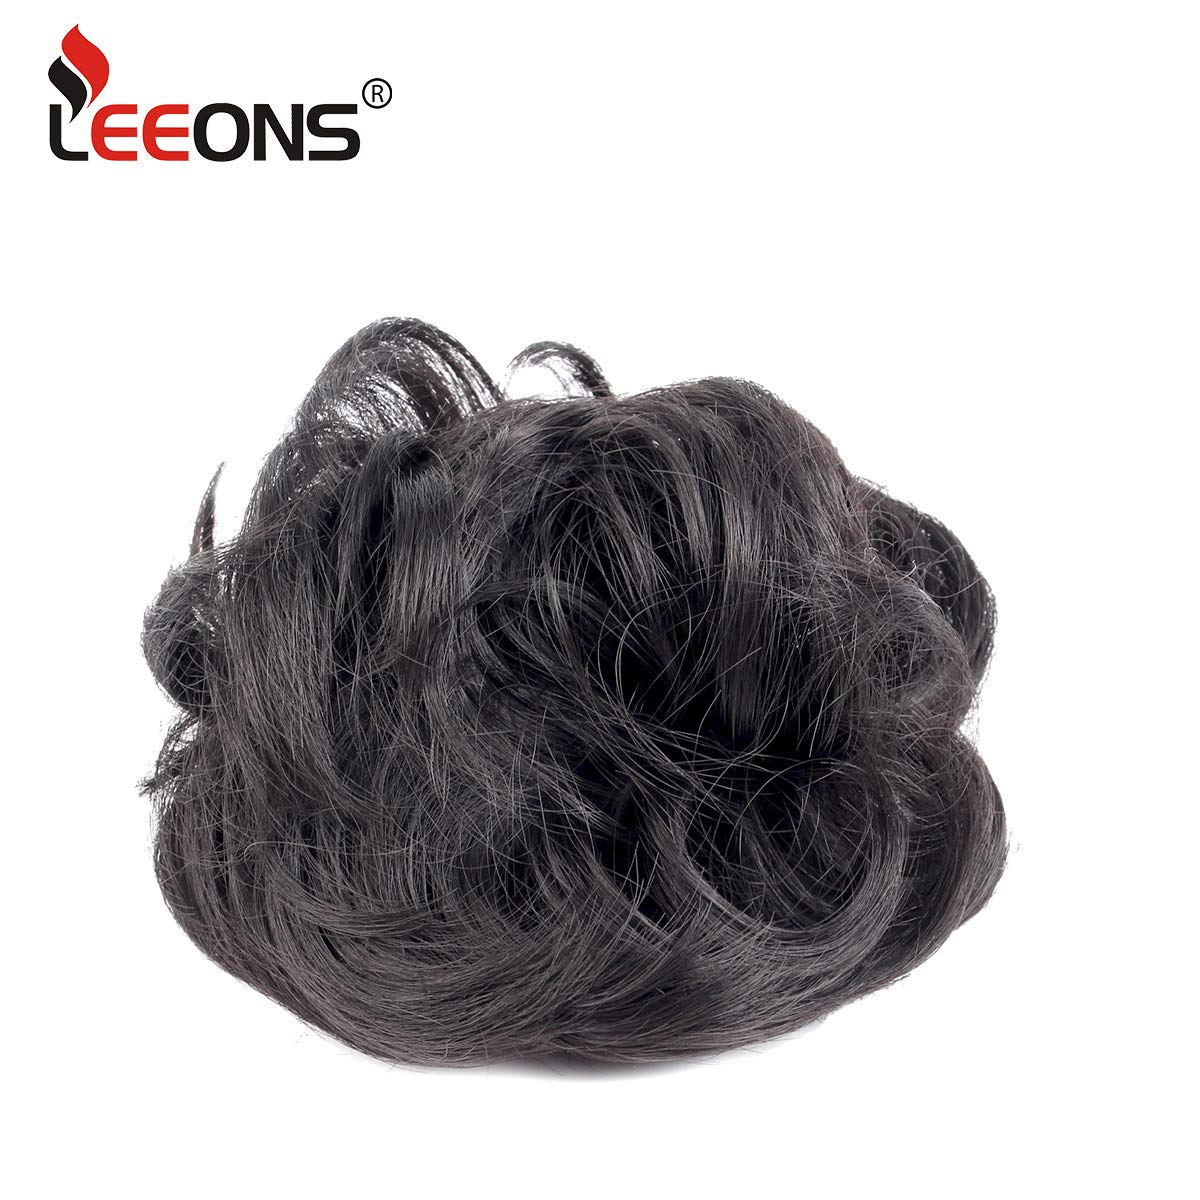 Leeons Wavy Donut Updo Ribbon Ponytail Hair Extensions Curly Messy Bun Dish Scrunchy Scrunchie Hairpiece Wave Bun Scrunchie Synthetic Hair Bun (#2) by LEEONS (Image #2)